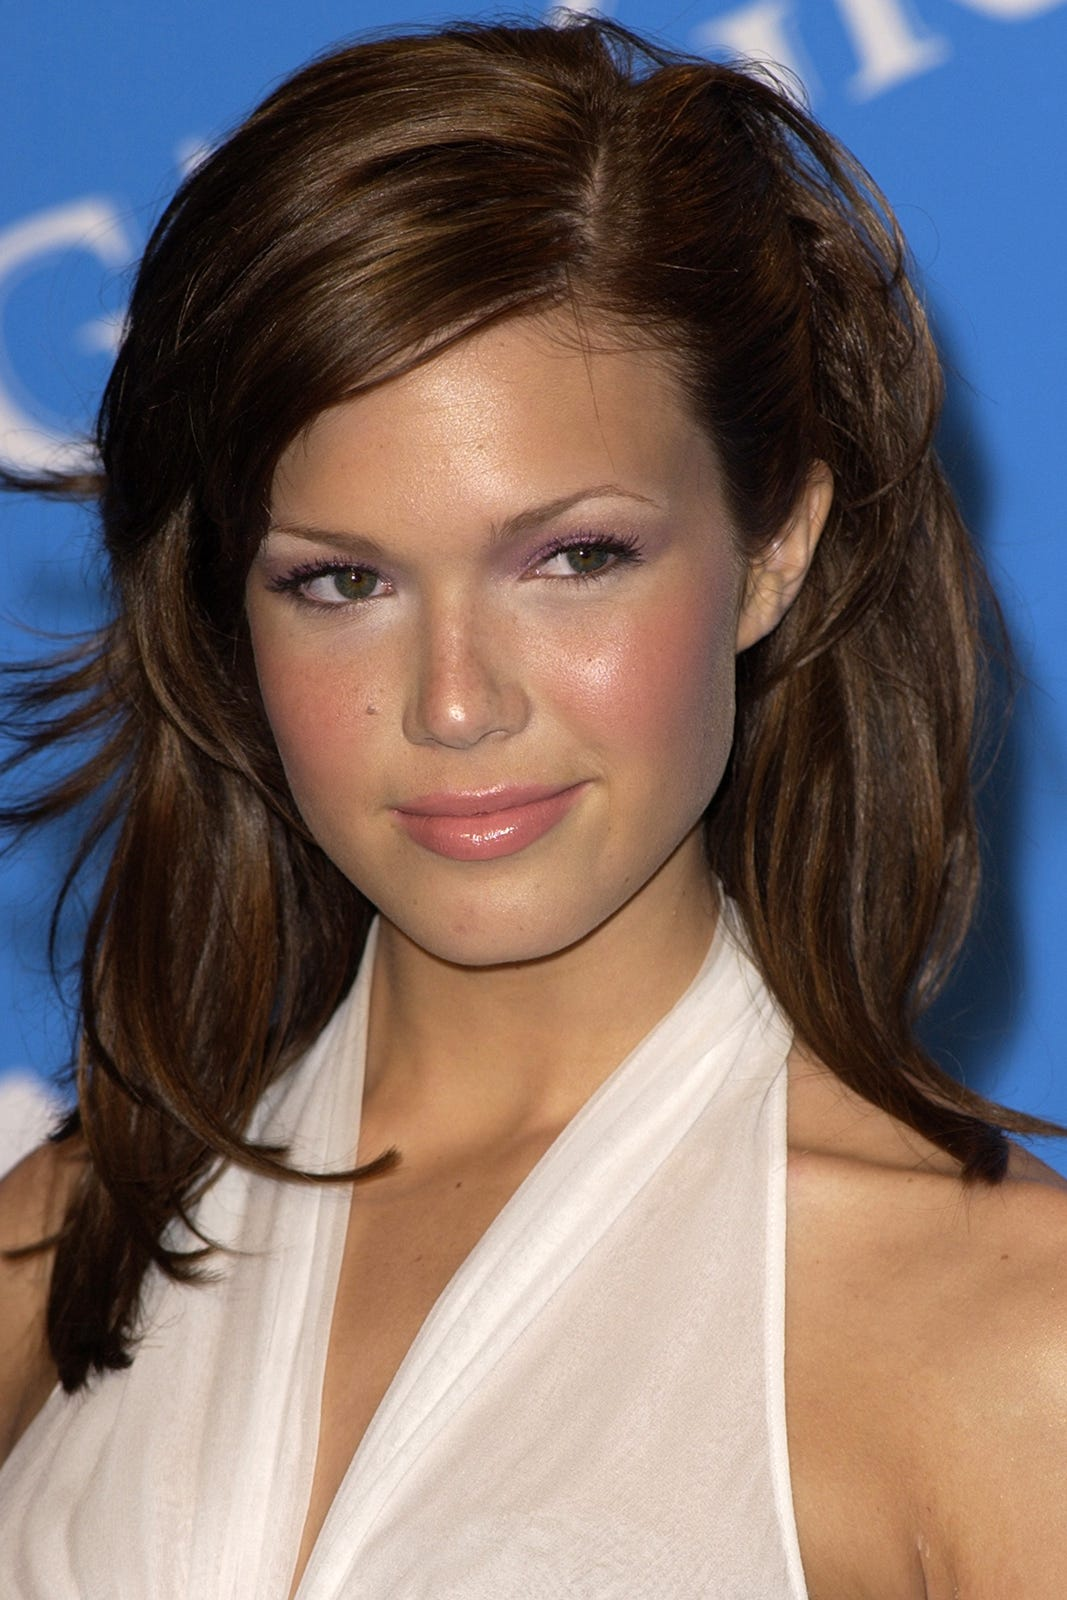 Images Of Candy Loving Minimalist mandy moore birthday, photos over the years